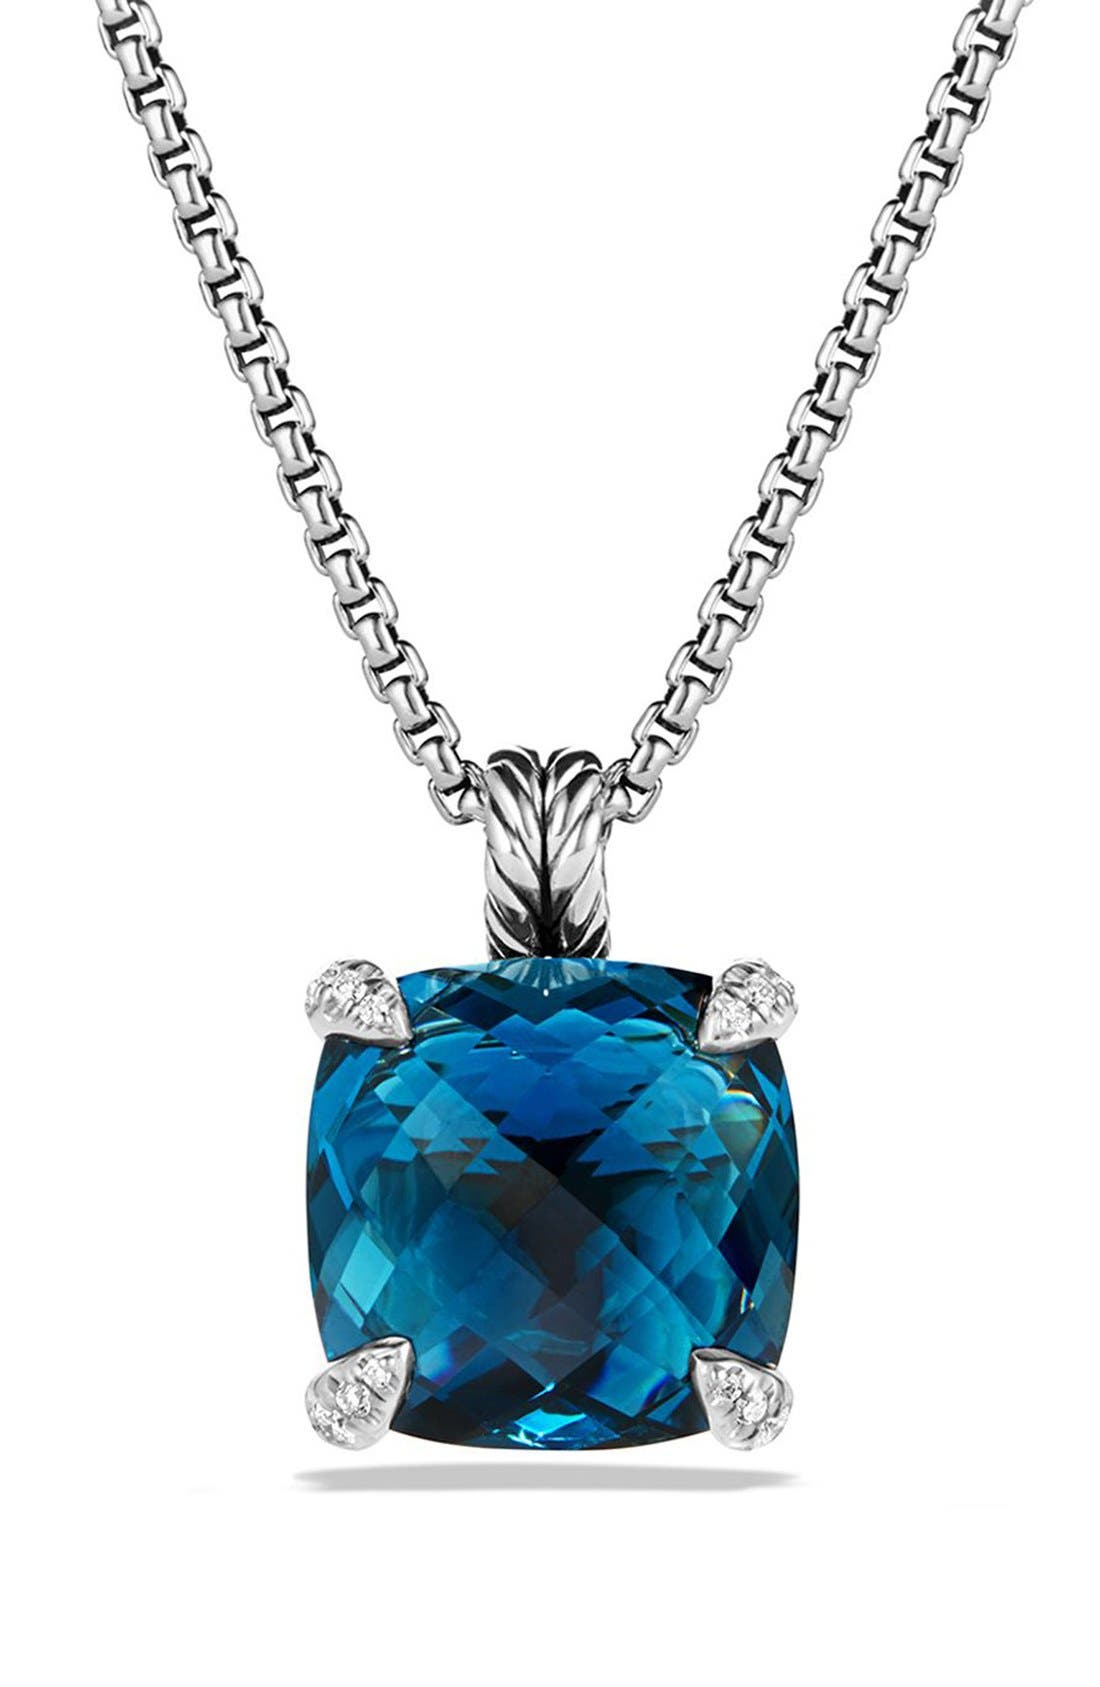 'Châtelaine' Pendant Necklace with Semiprecious Stone and Diamonds,                             Main thumbnail 1, color,                             SILVER/ HAMPTON BLUE TOPAZ